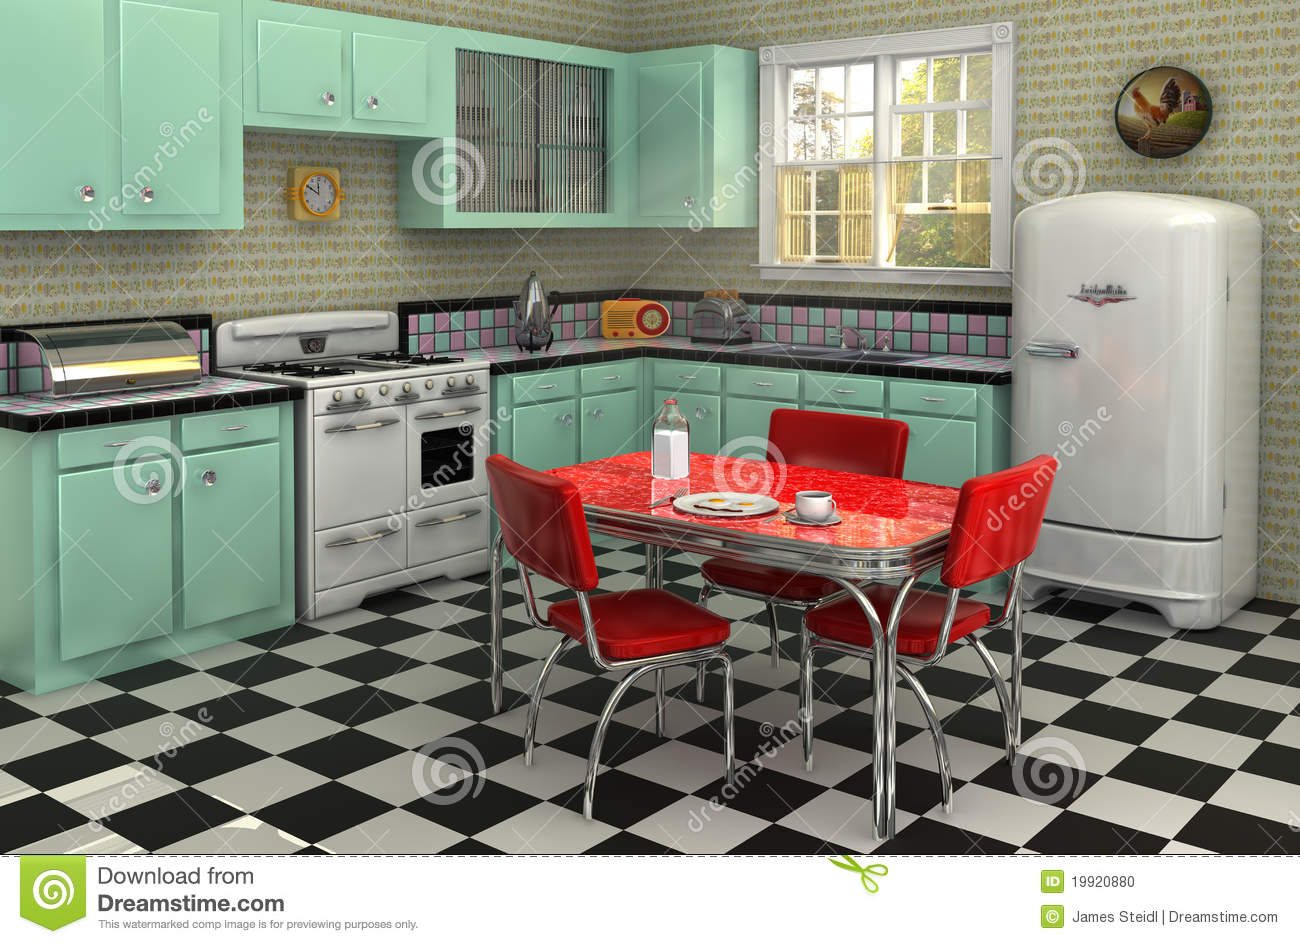 1950 S Kitchen Stock Photo Image 19920880